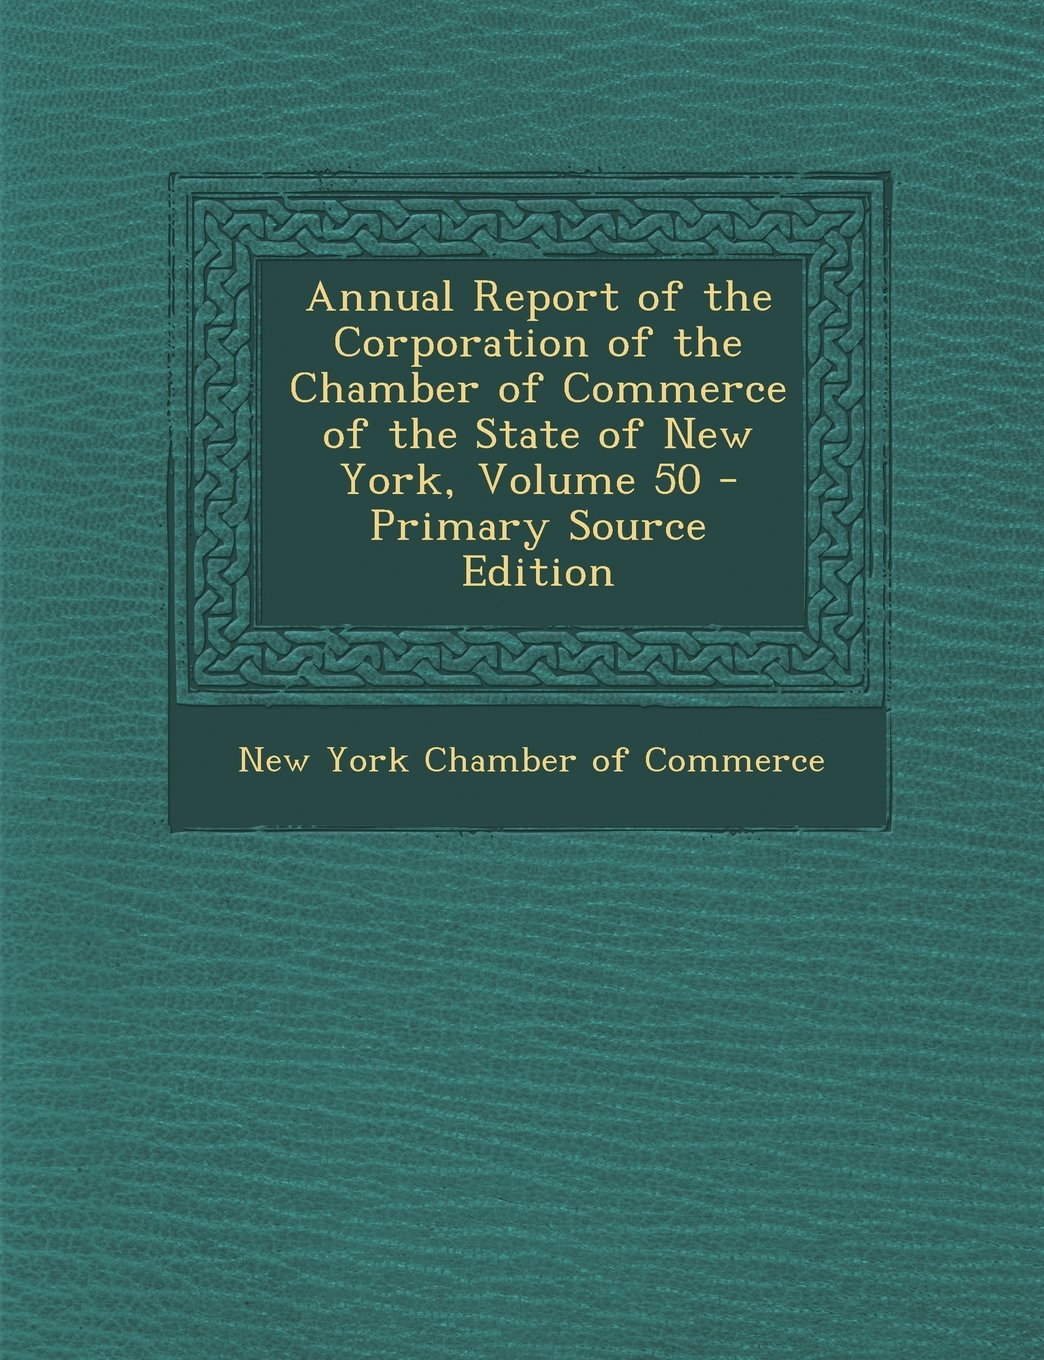 Read Online Annual Report of the Corporation of the Chamber of Commerce of the State of New York, Volume 50 - Primary Source Edition PDF